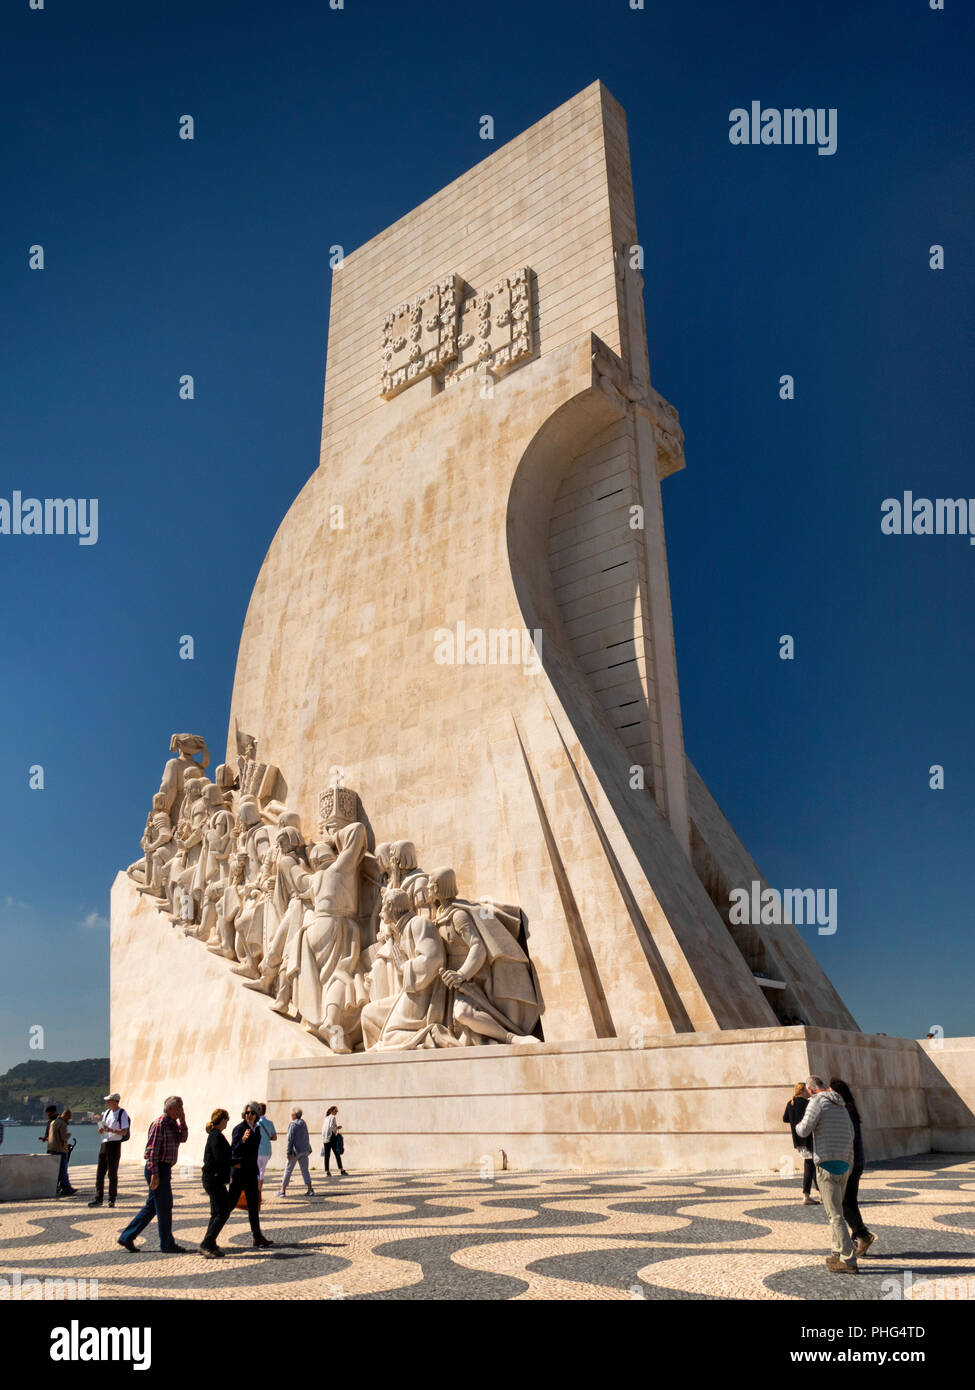 Portugal, Lisbon, Belem, Padrao dos Deccobrimentos, the discoveries monument, memorial to seafaring explorers - Stock Image